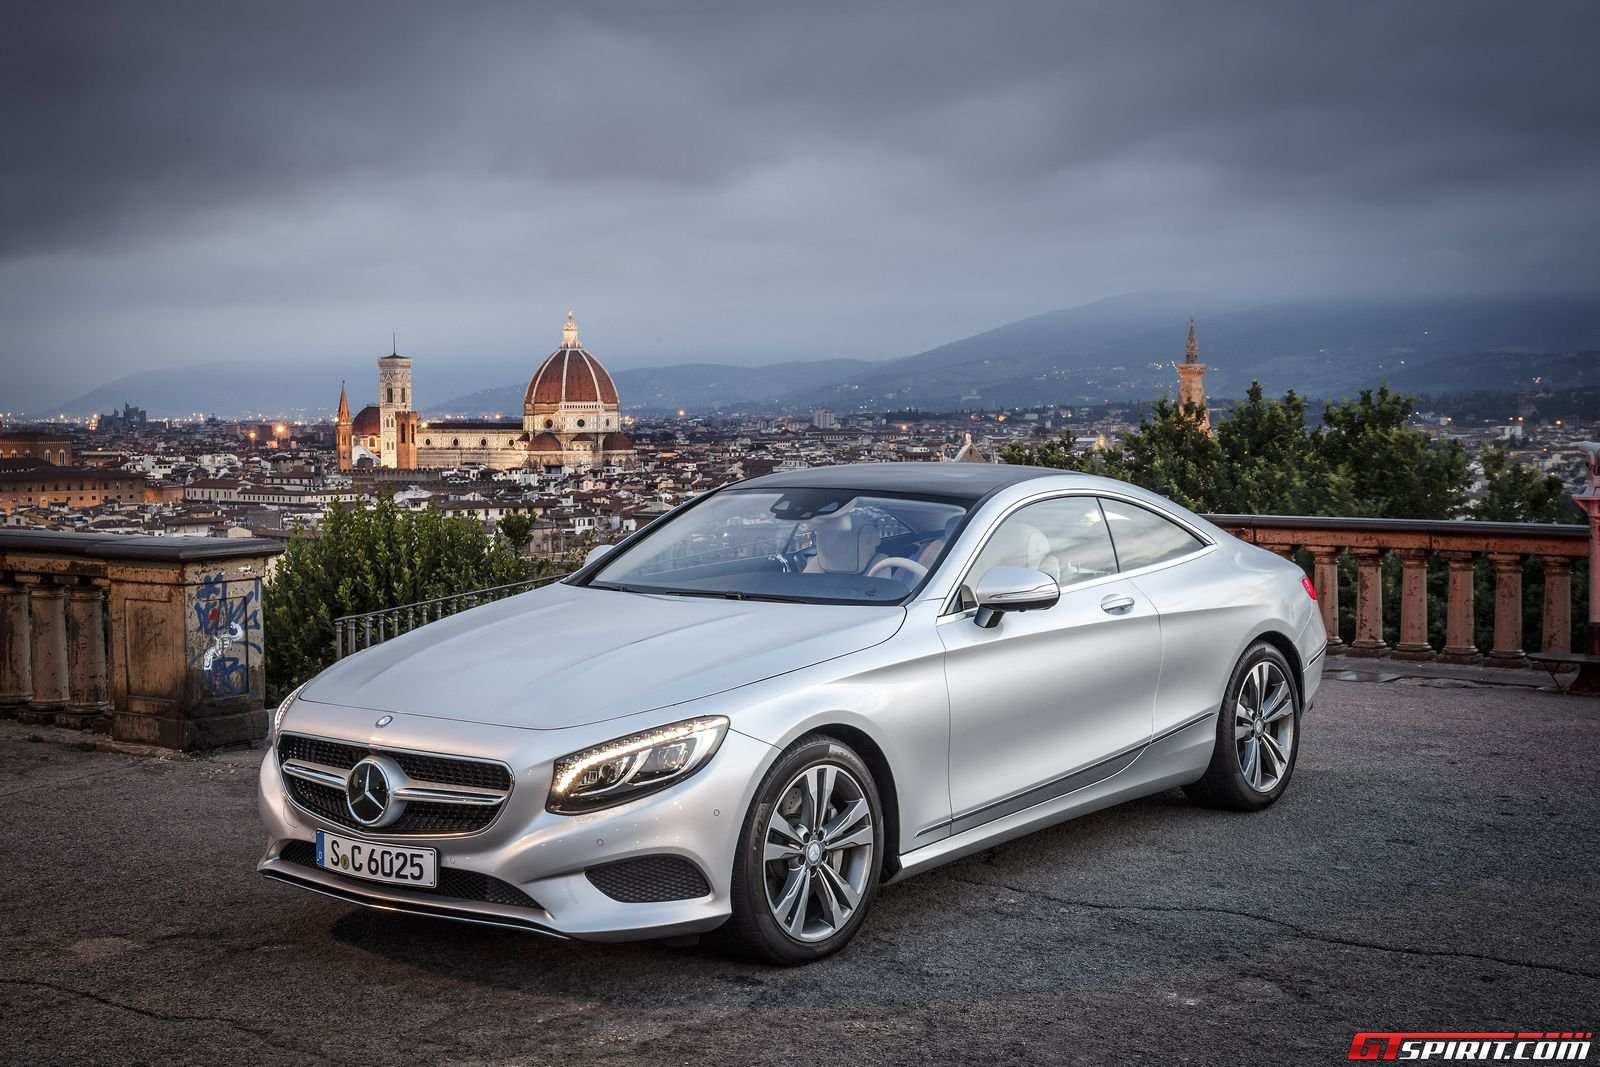 2015 mercedes benz s500 s63 amg coupe review gtspirit for 2015 mercedes benz s63